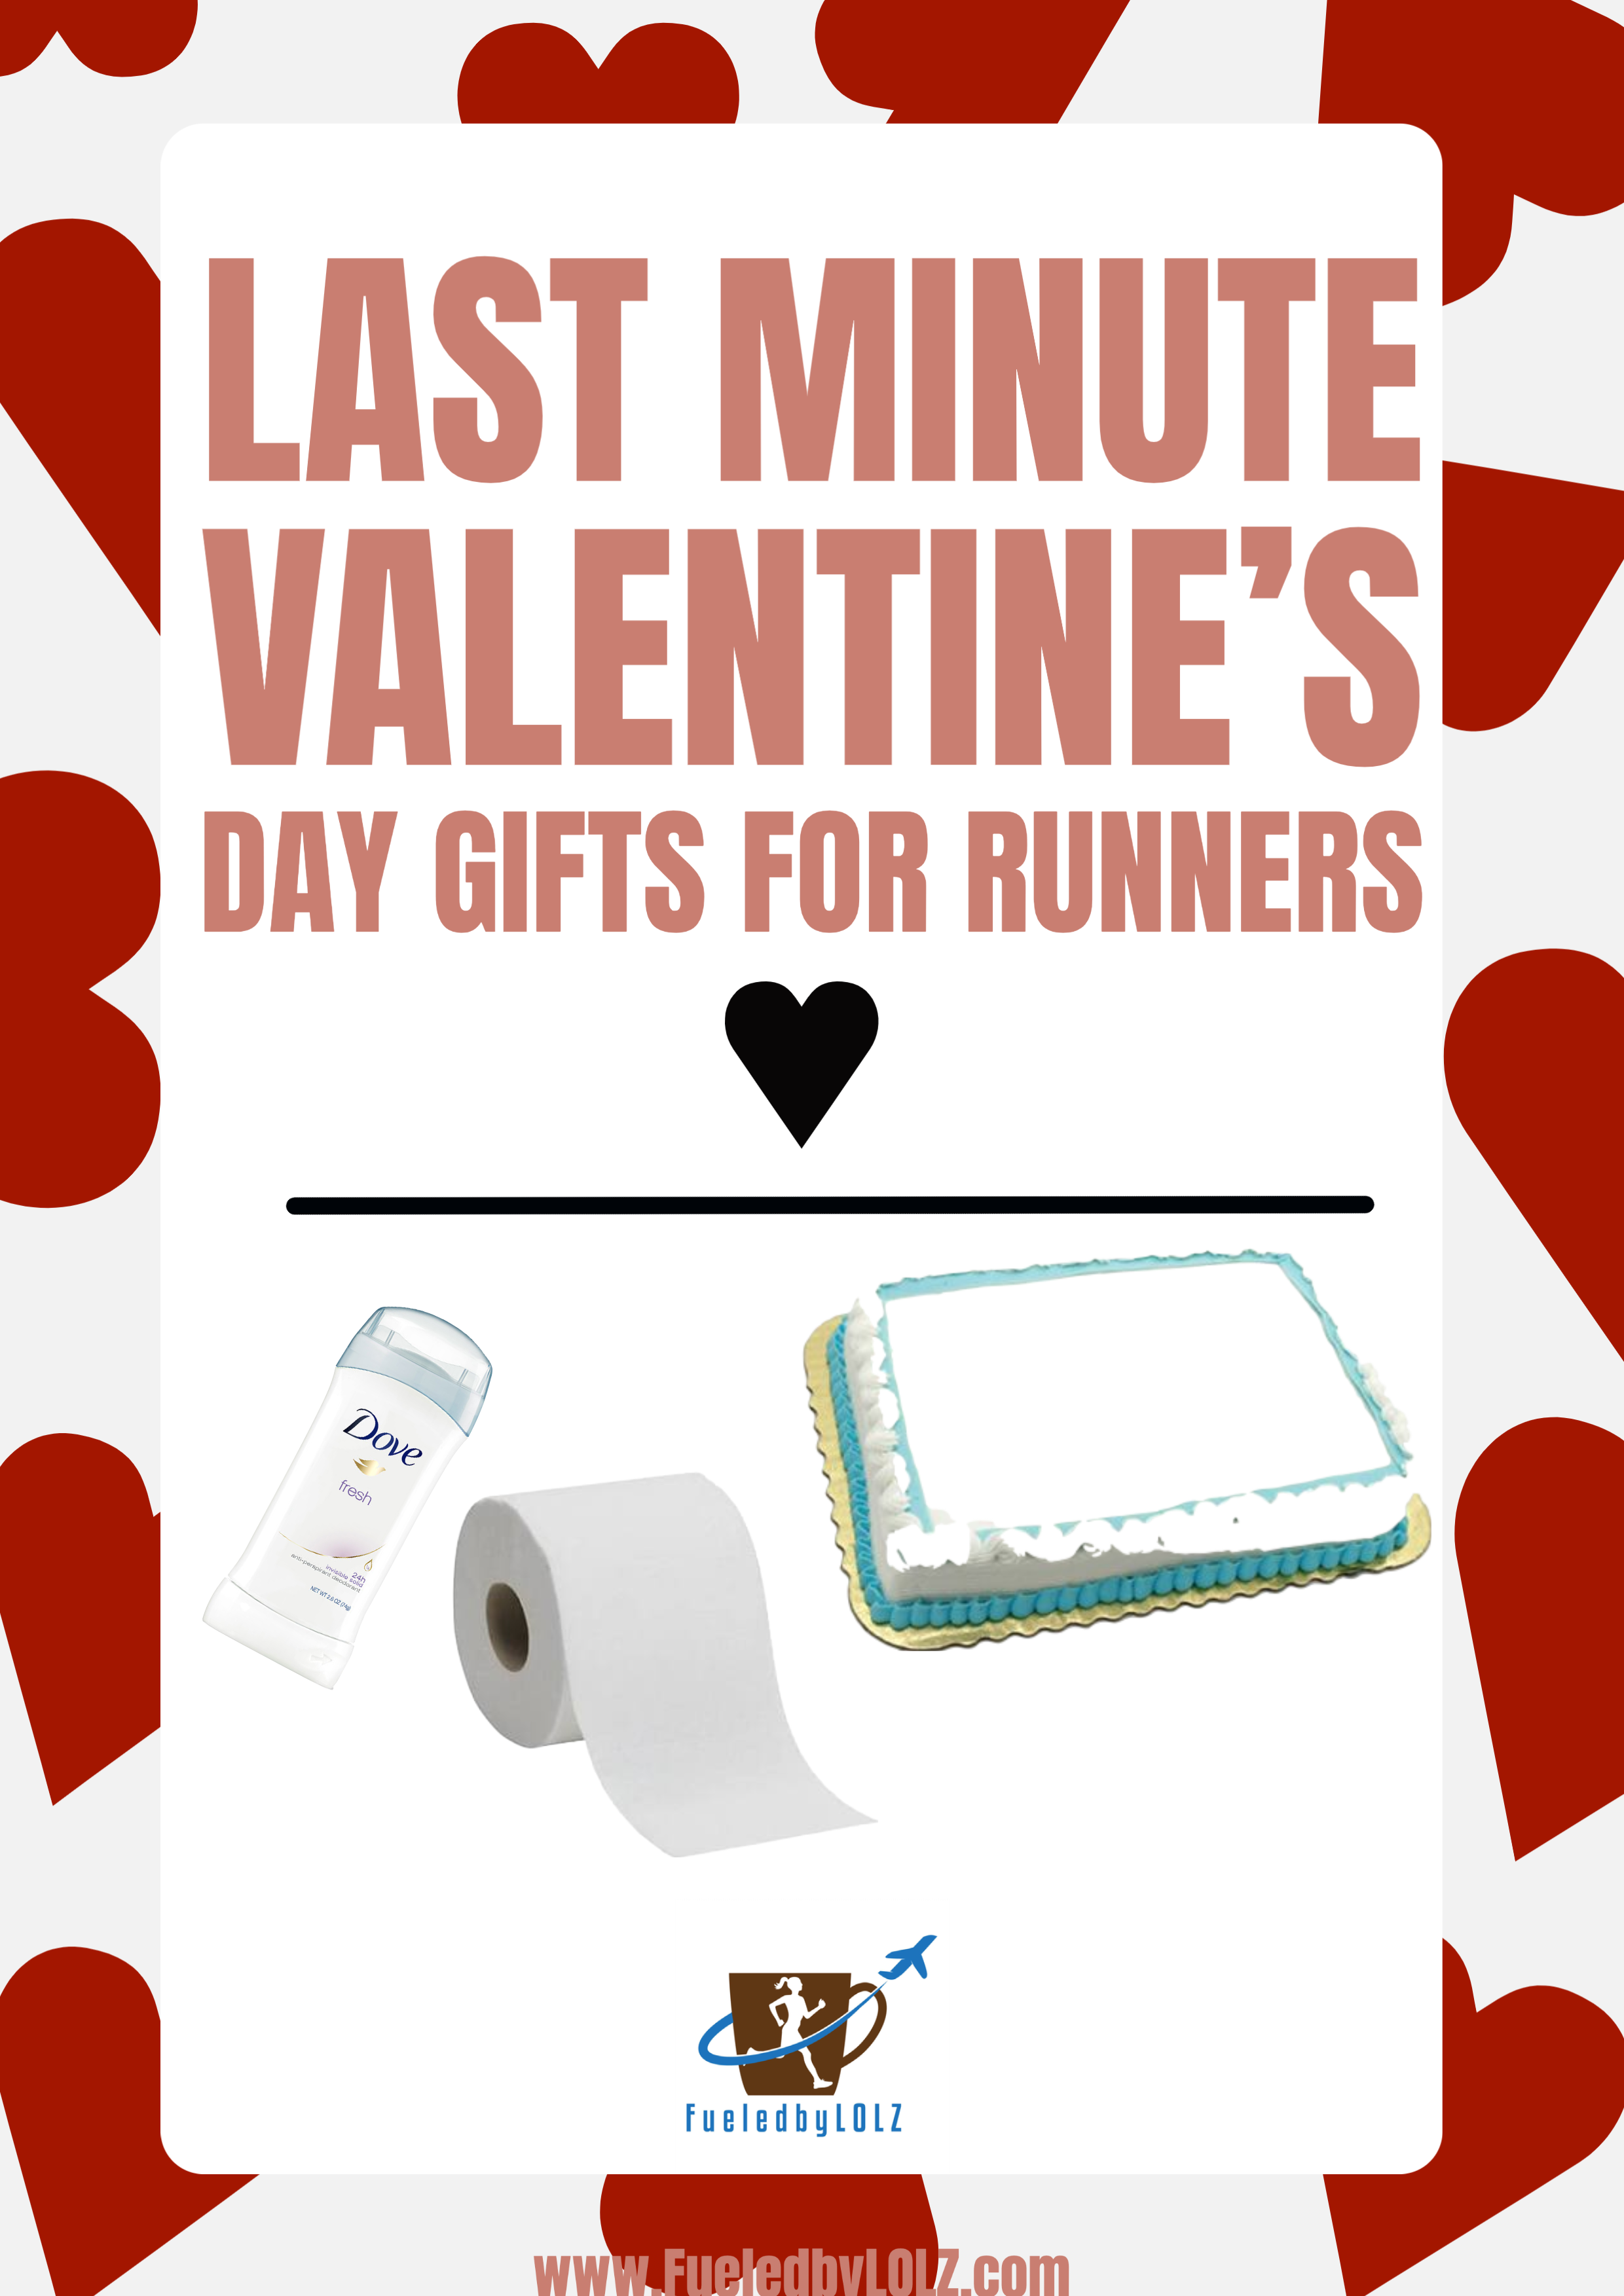 Last Minute Valentines Day Gifts for Runners